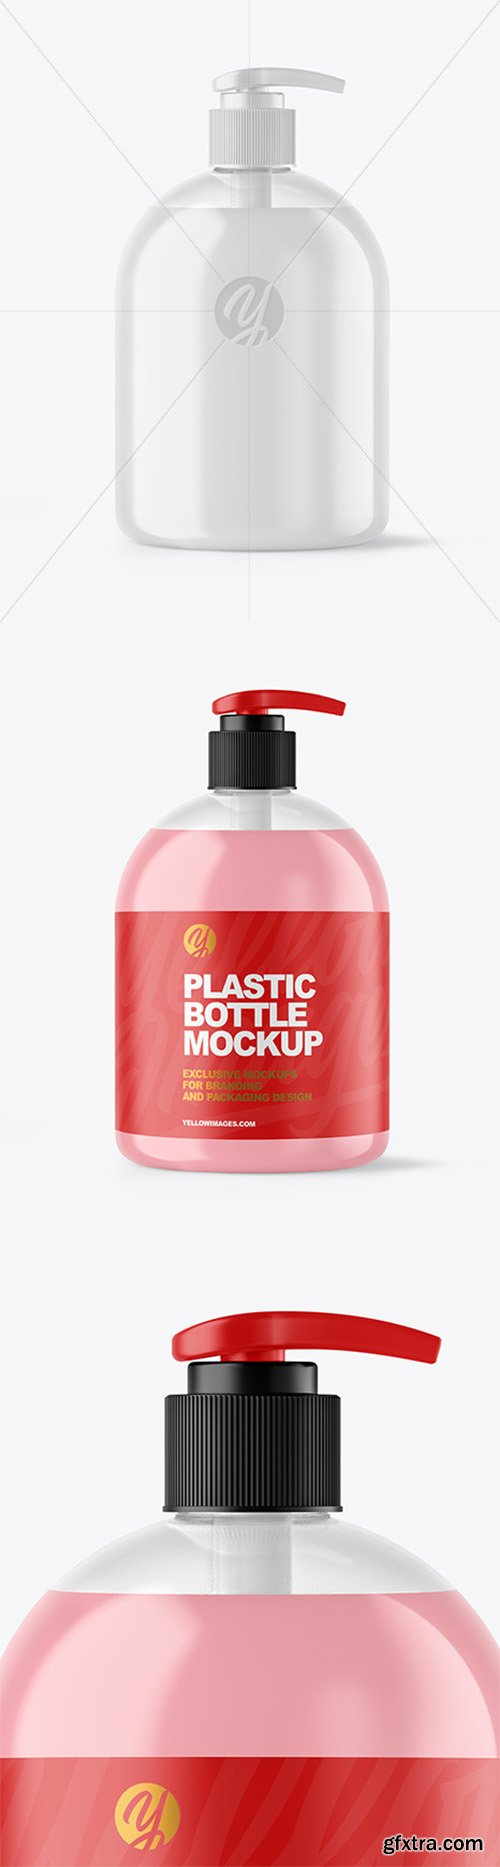 Clear Liquid Soap Bottle with Pump Mockup 62140